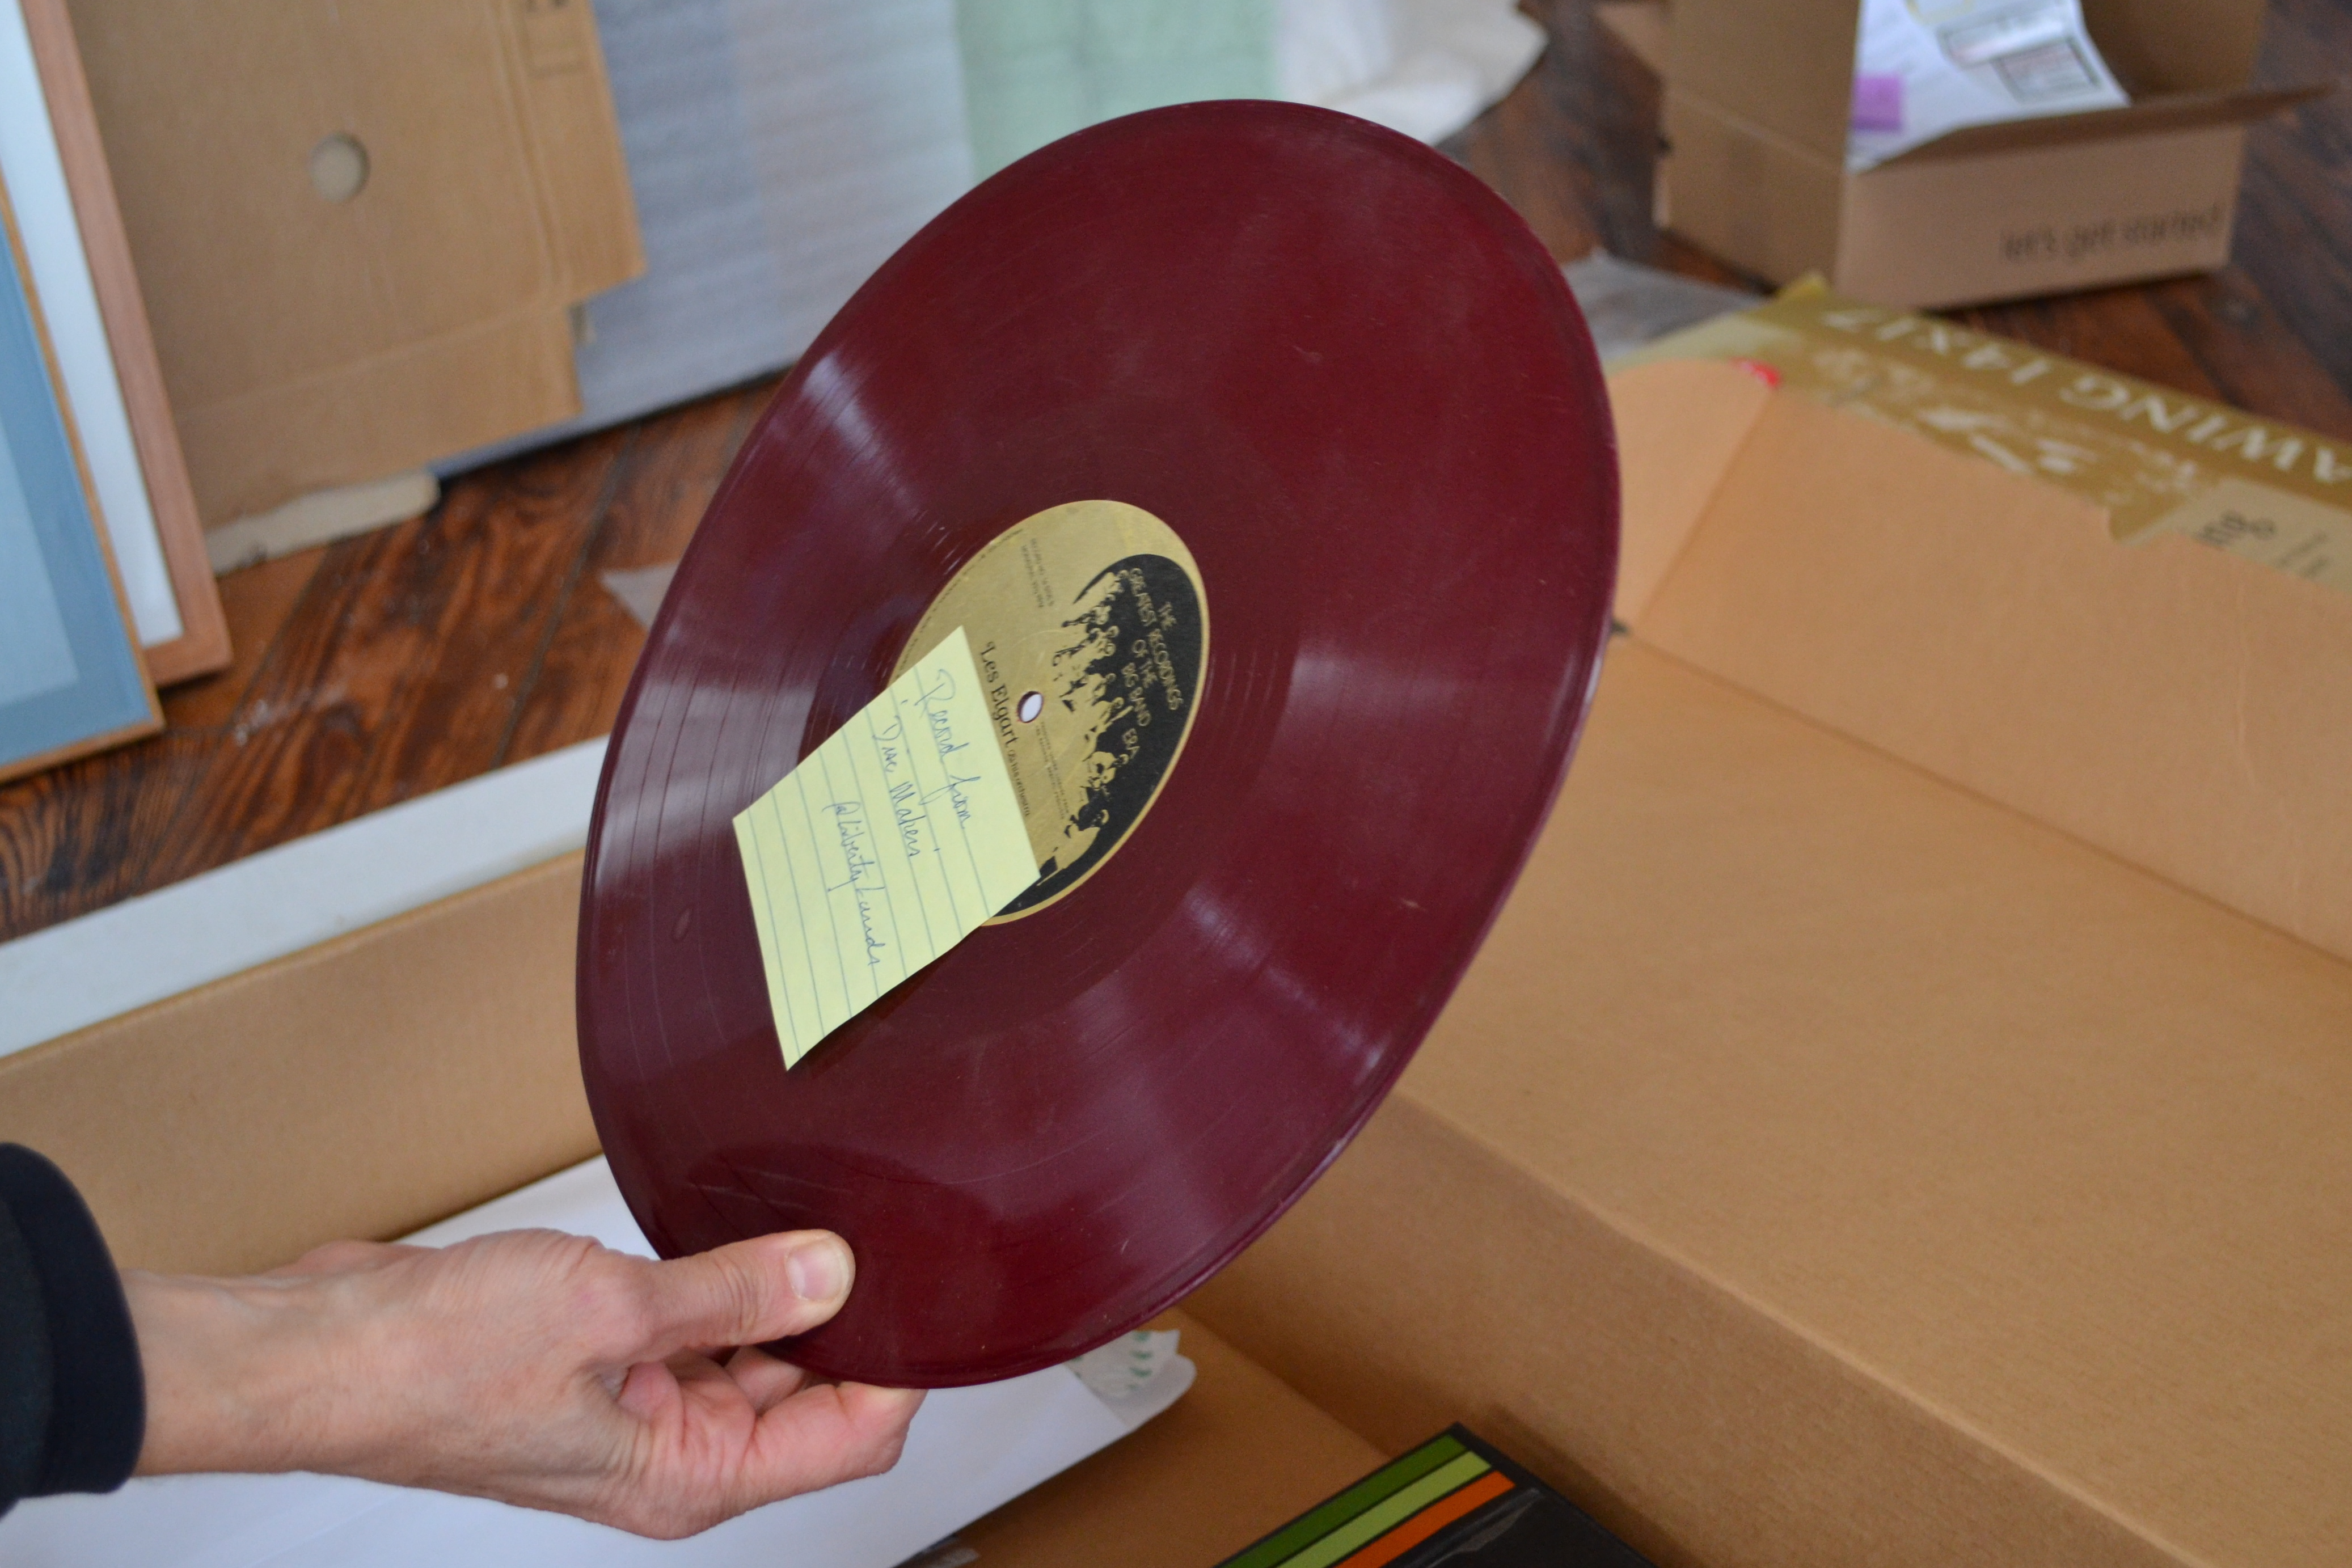 While building Liberty Lands Park, neighbors found pits of red vinyl records made by Disc Makers